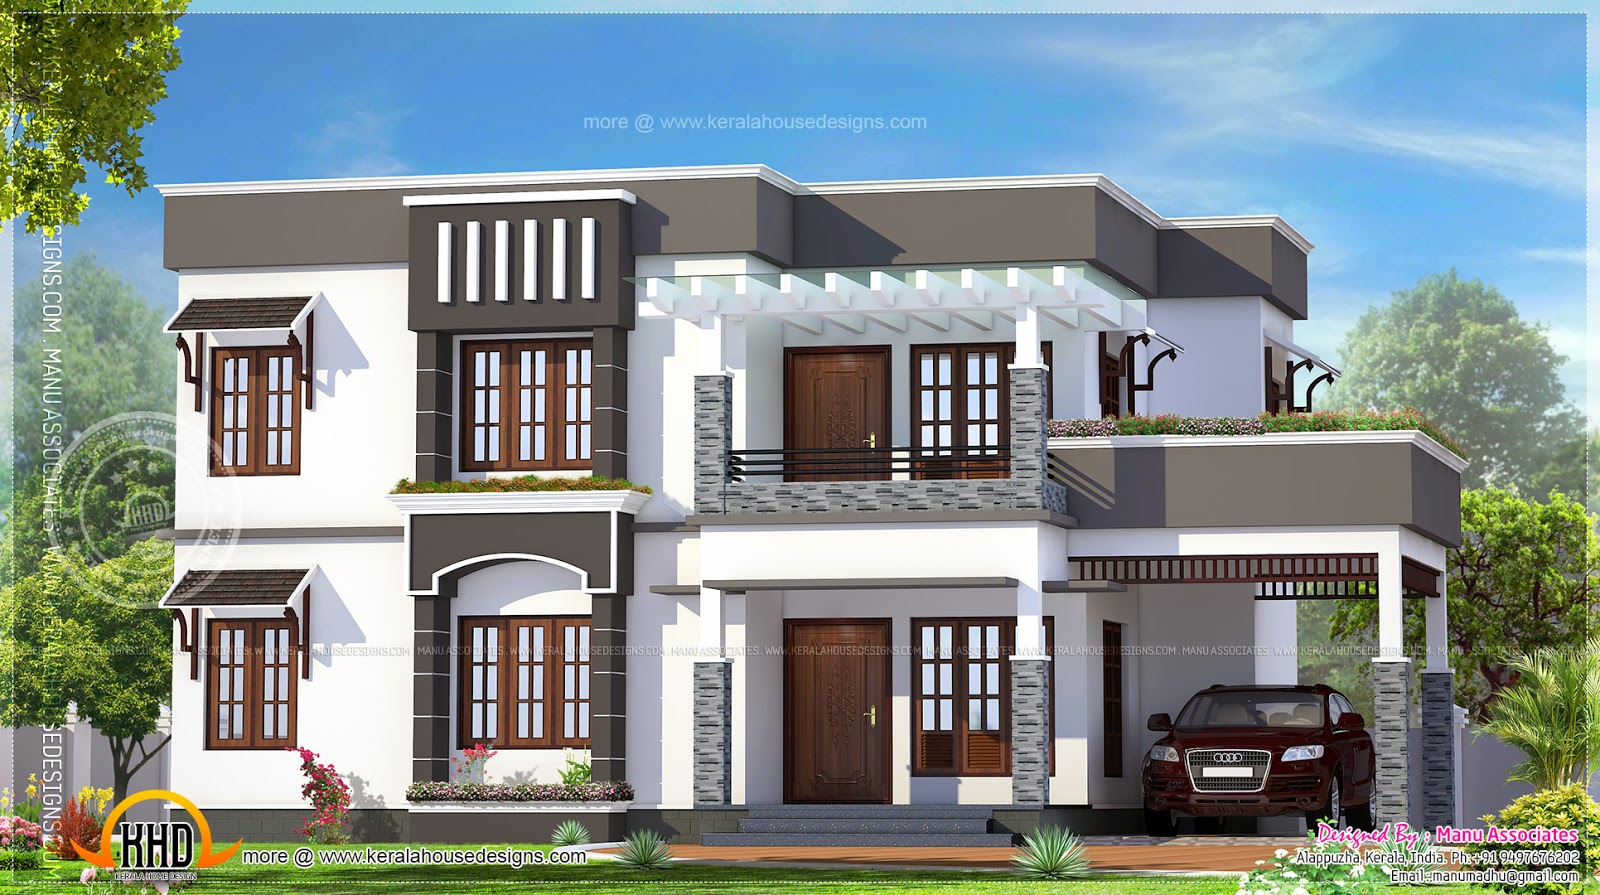 4 bhk flat roof house exterior kerala home design and for Home architecture and design